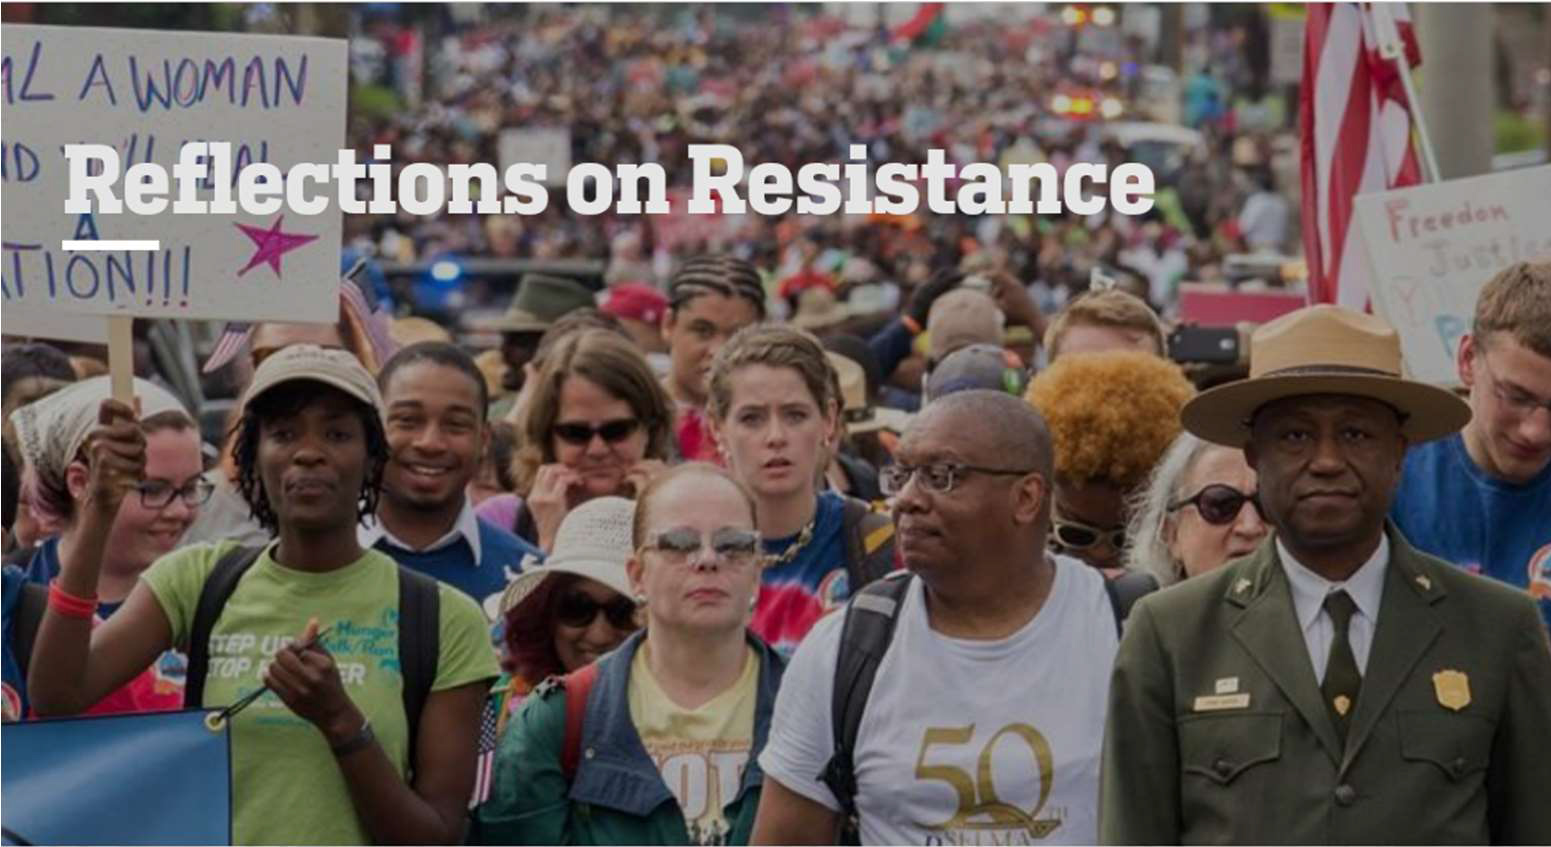 Microsoft Word - Kevin Mosley Reflections on Resistance Father R